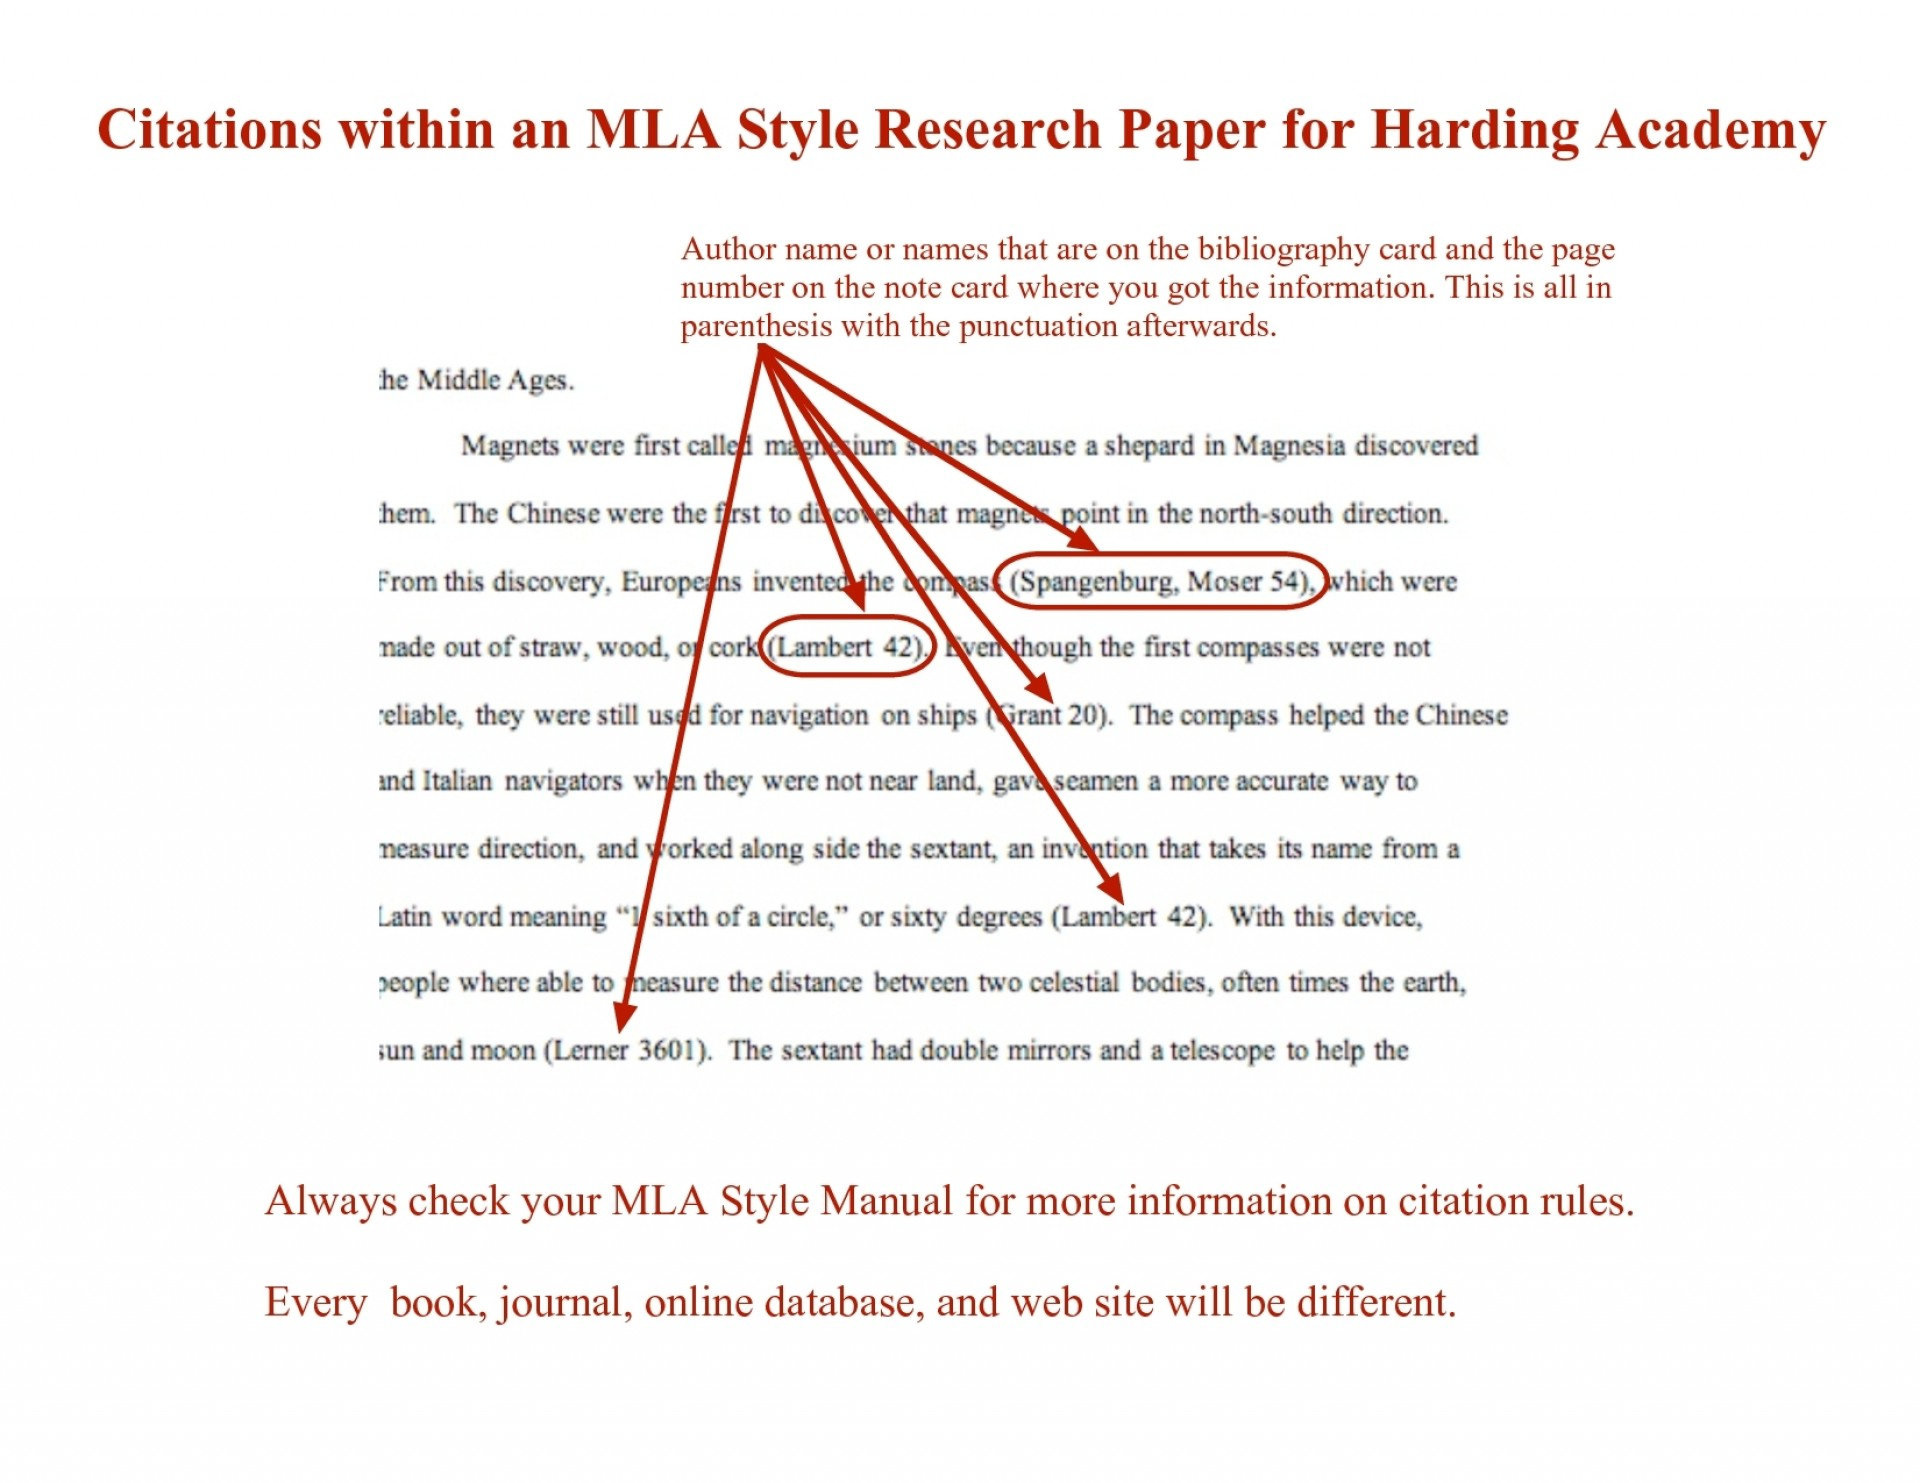 001 Ideas Of How To Cite Website Inr Mla With Additional Do You Citations Format For Research Citing Fearsome A Paper In Text Sample 1920